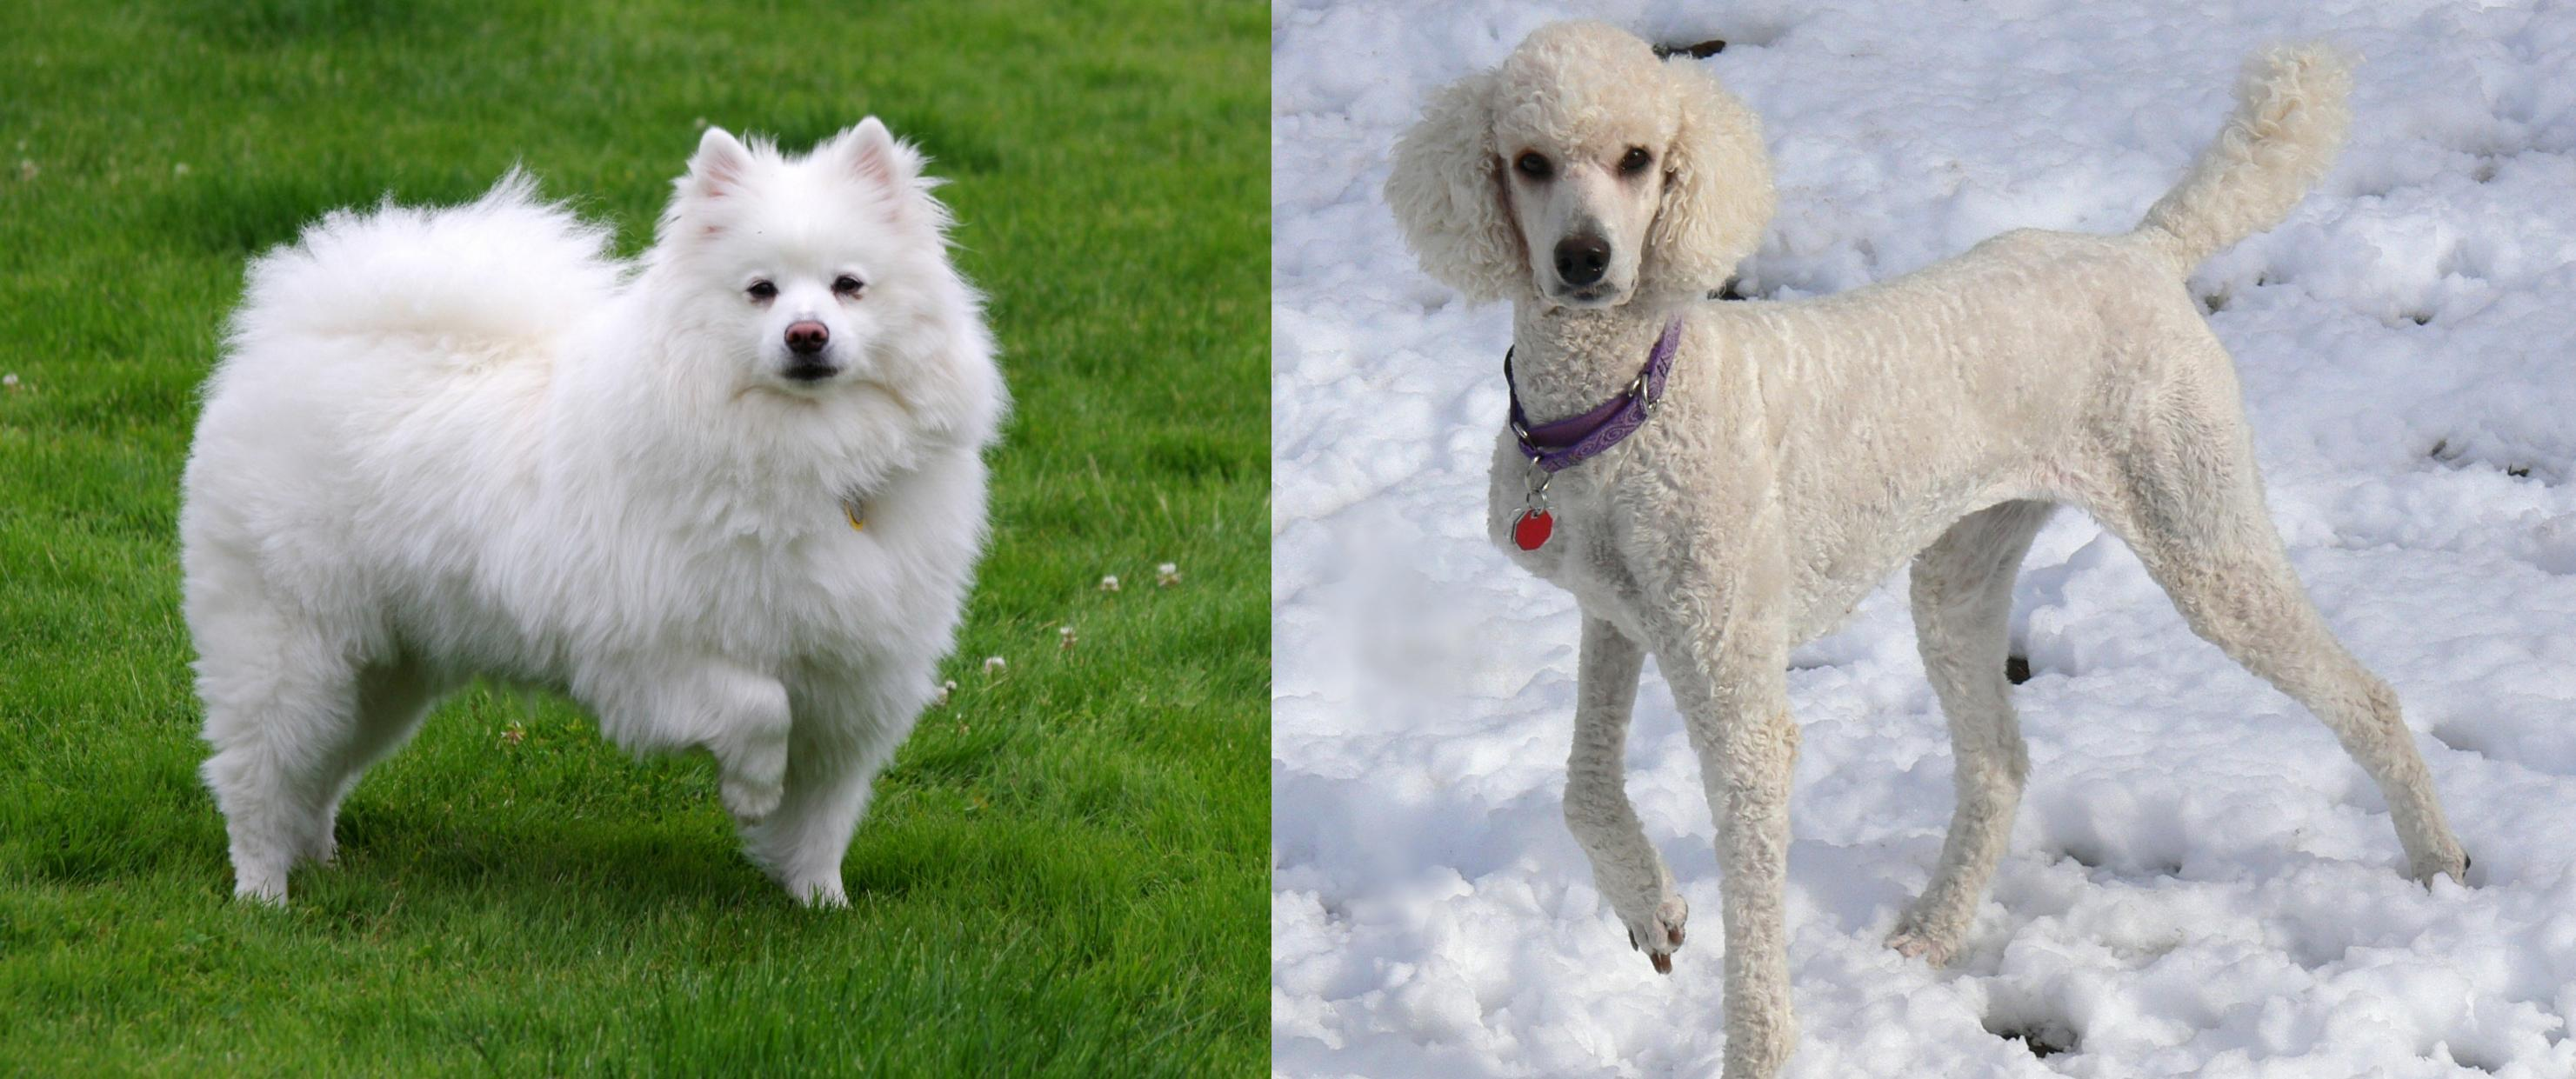 American Eskimo Dog Vs Poodle Breed